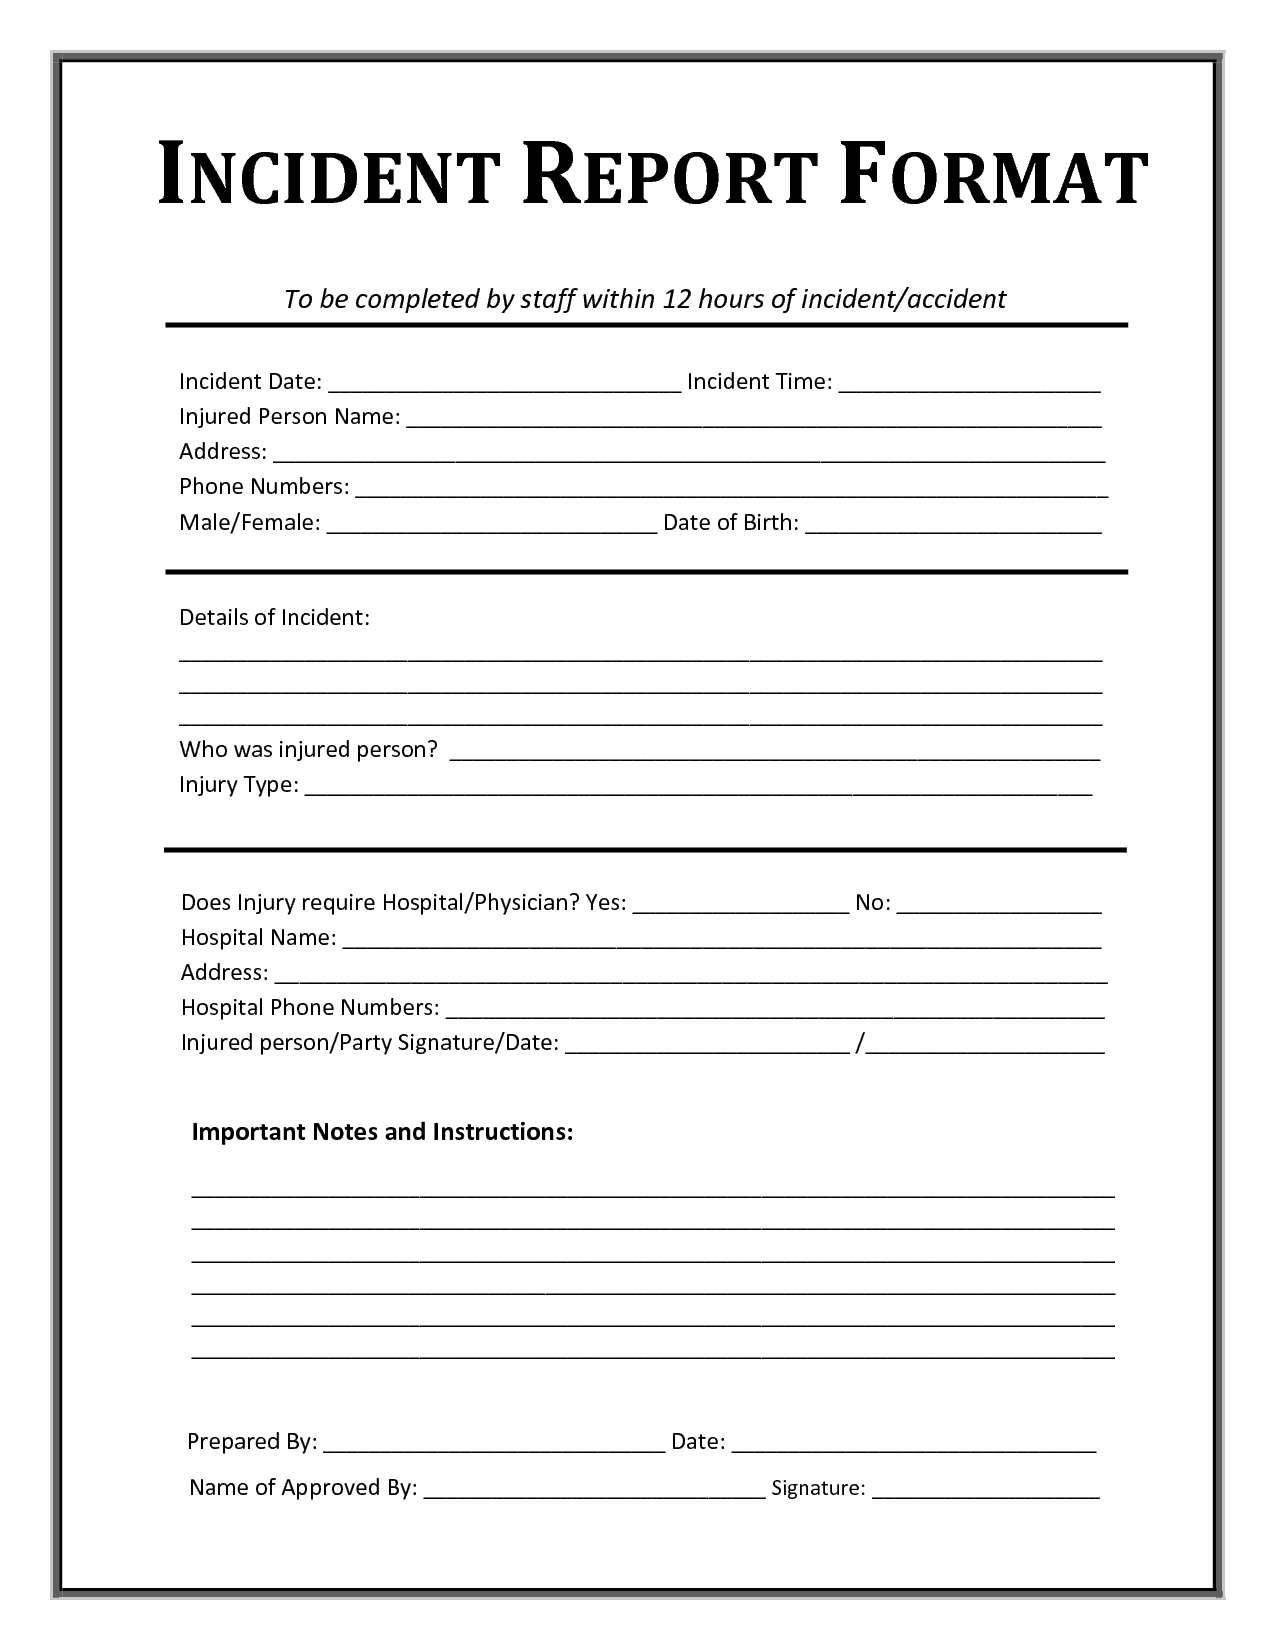 Image result for incident report template content